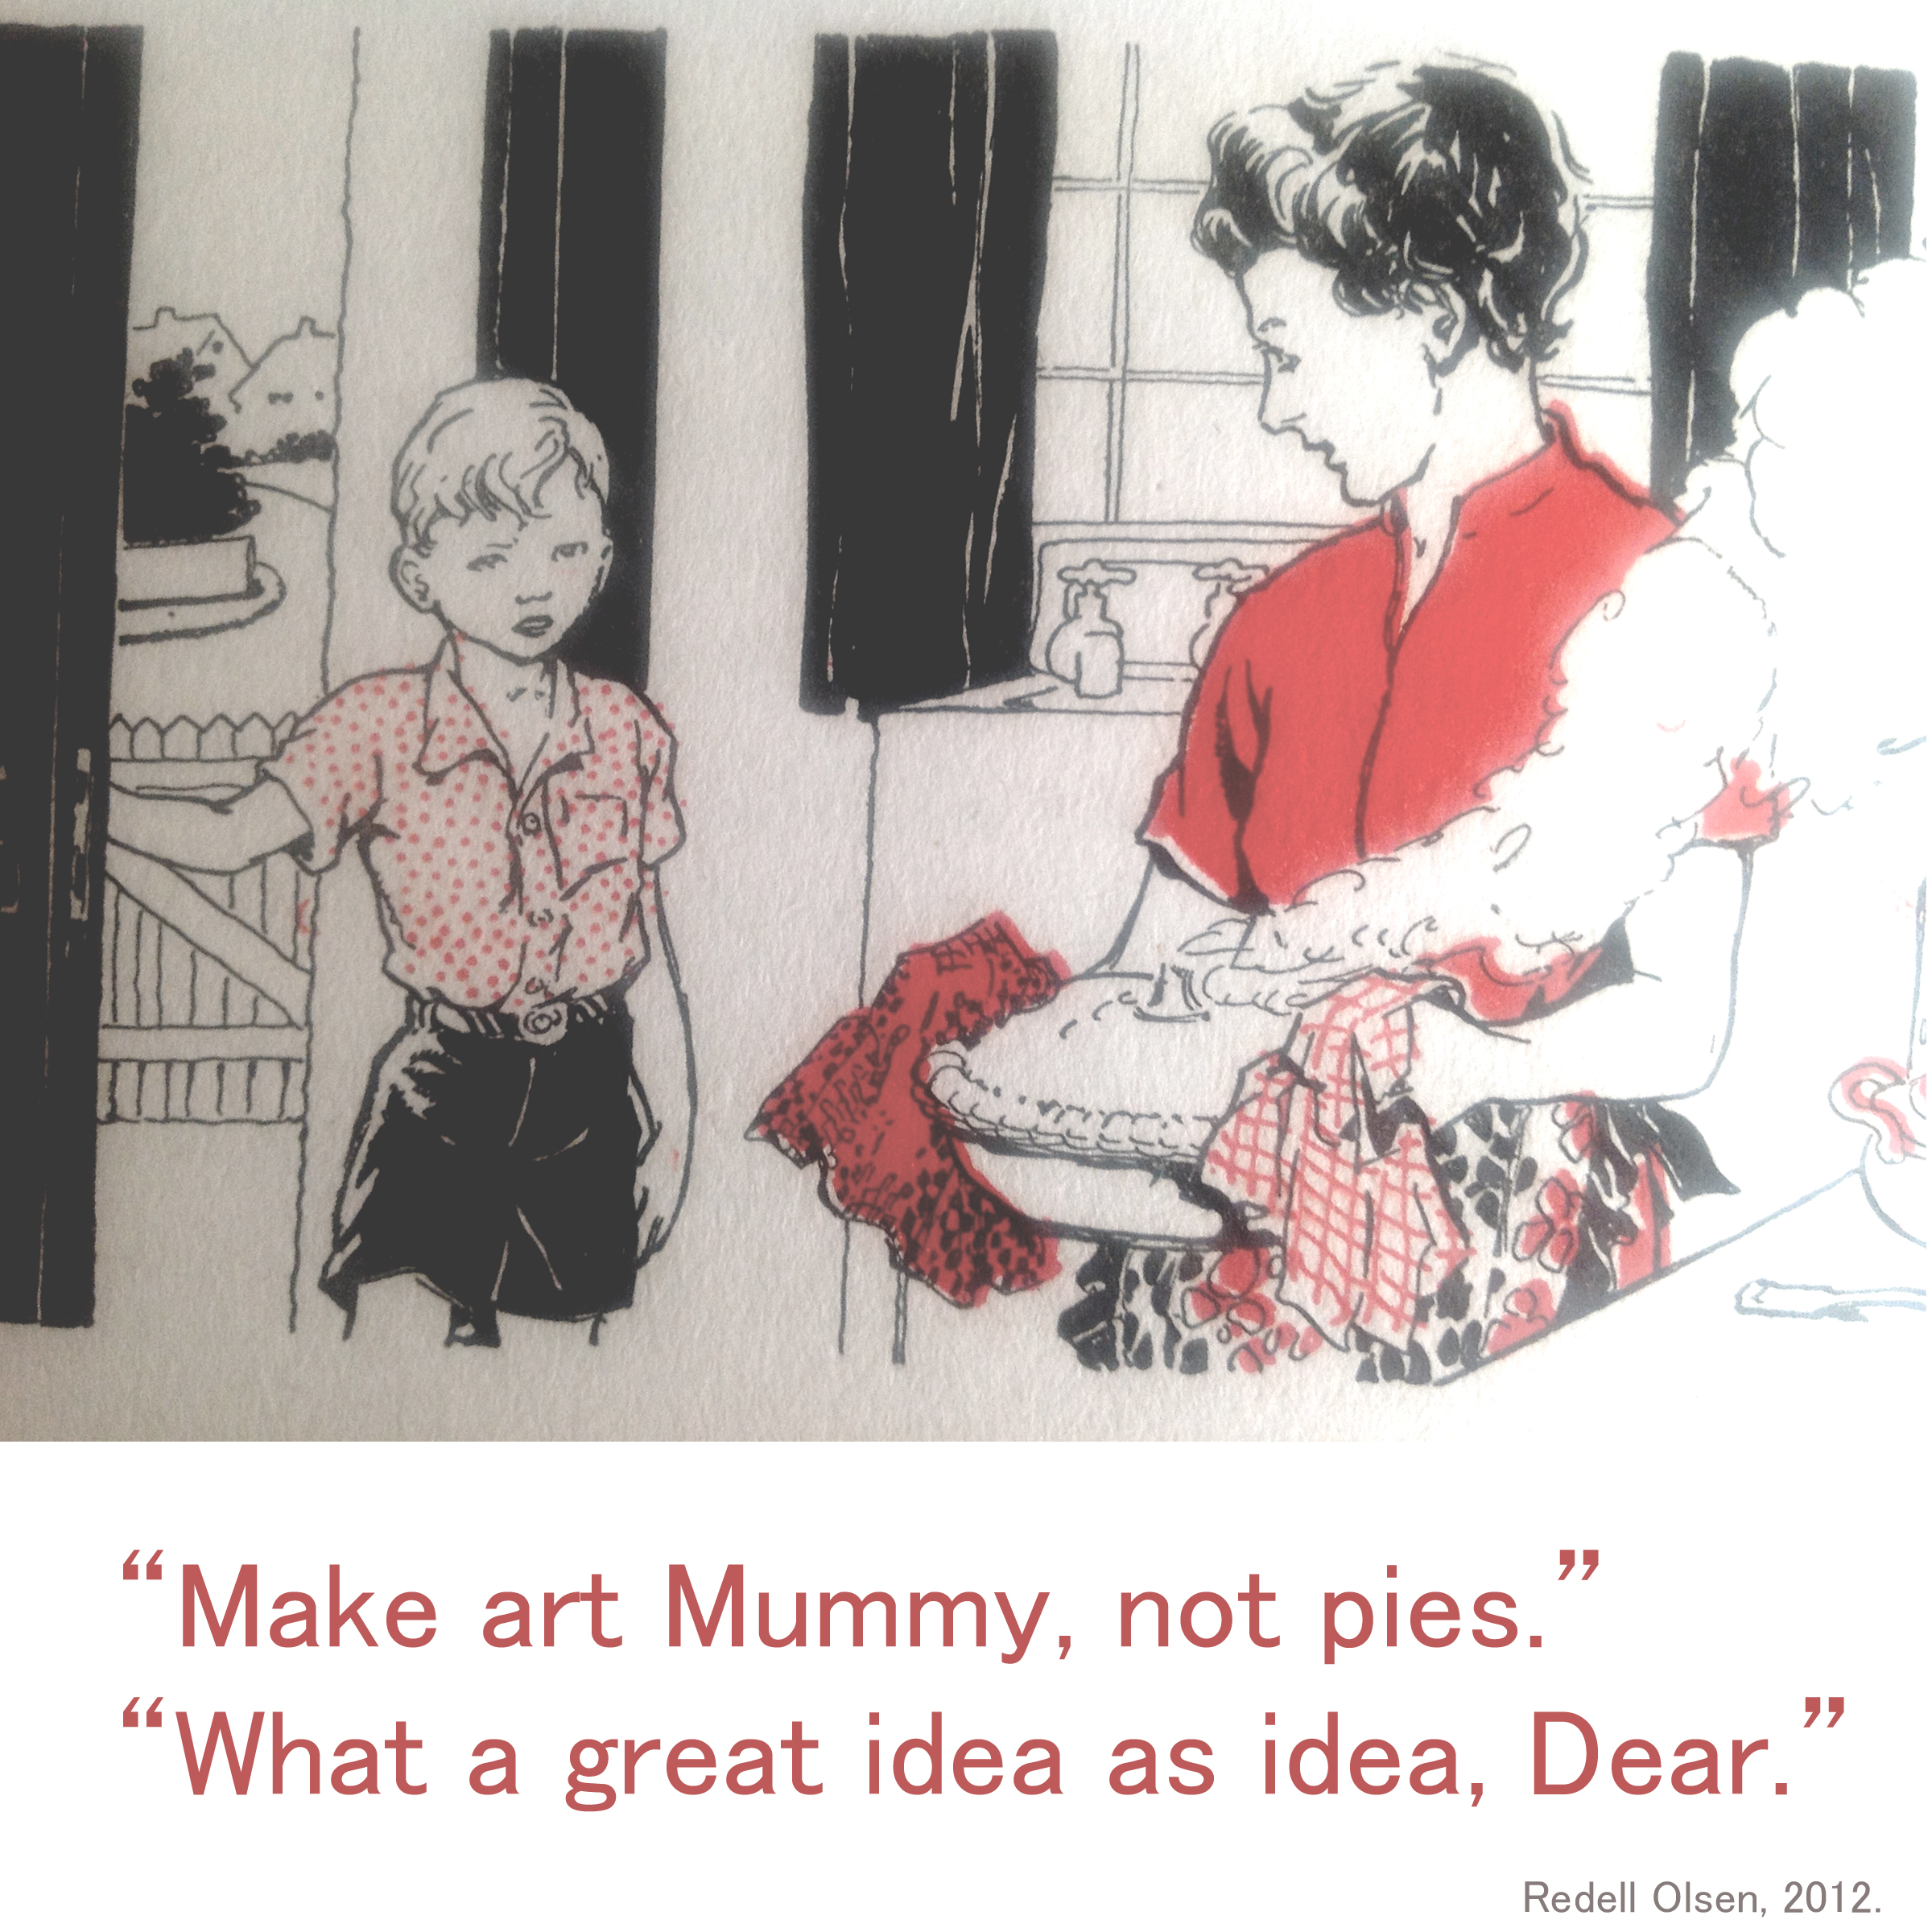 make art mummy not pies redellolsen